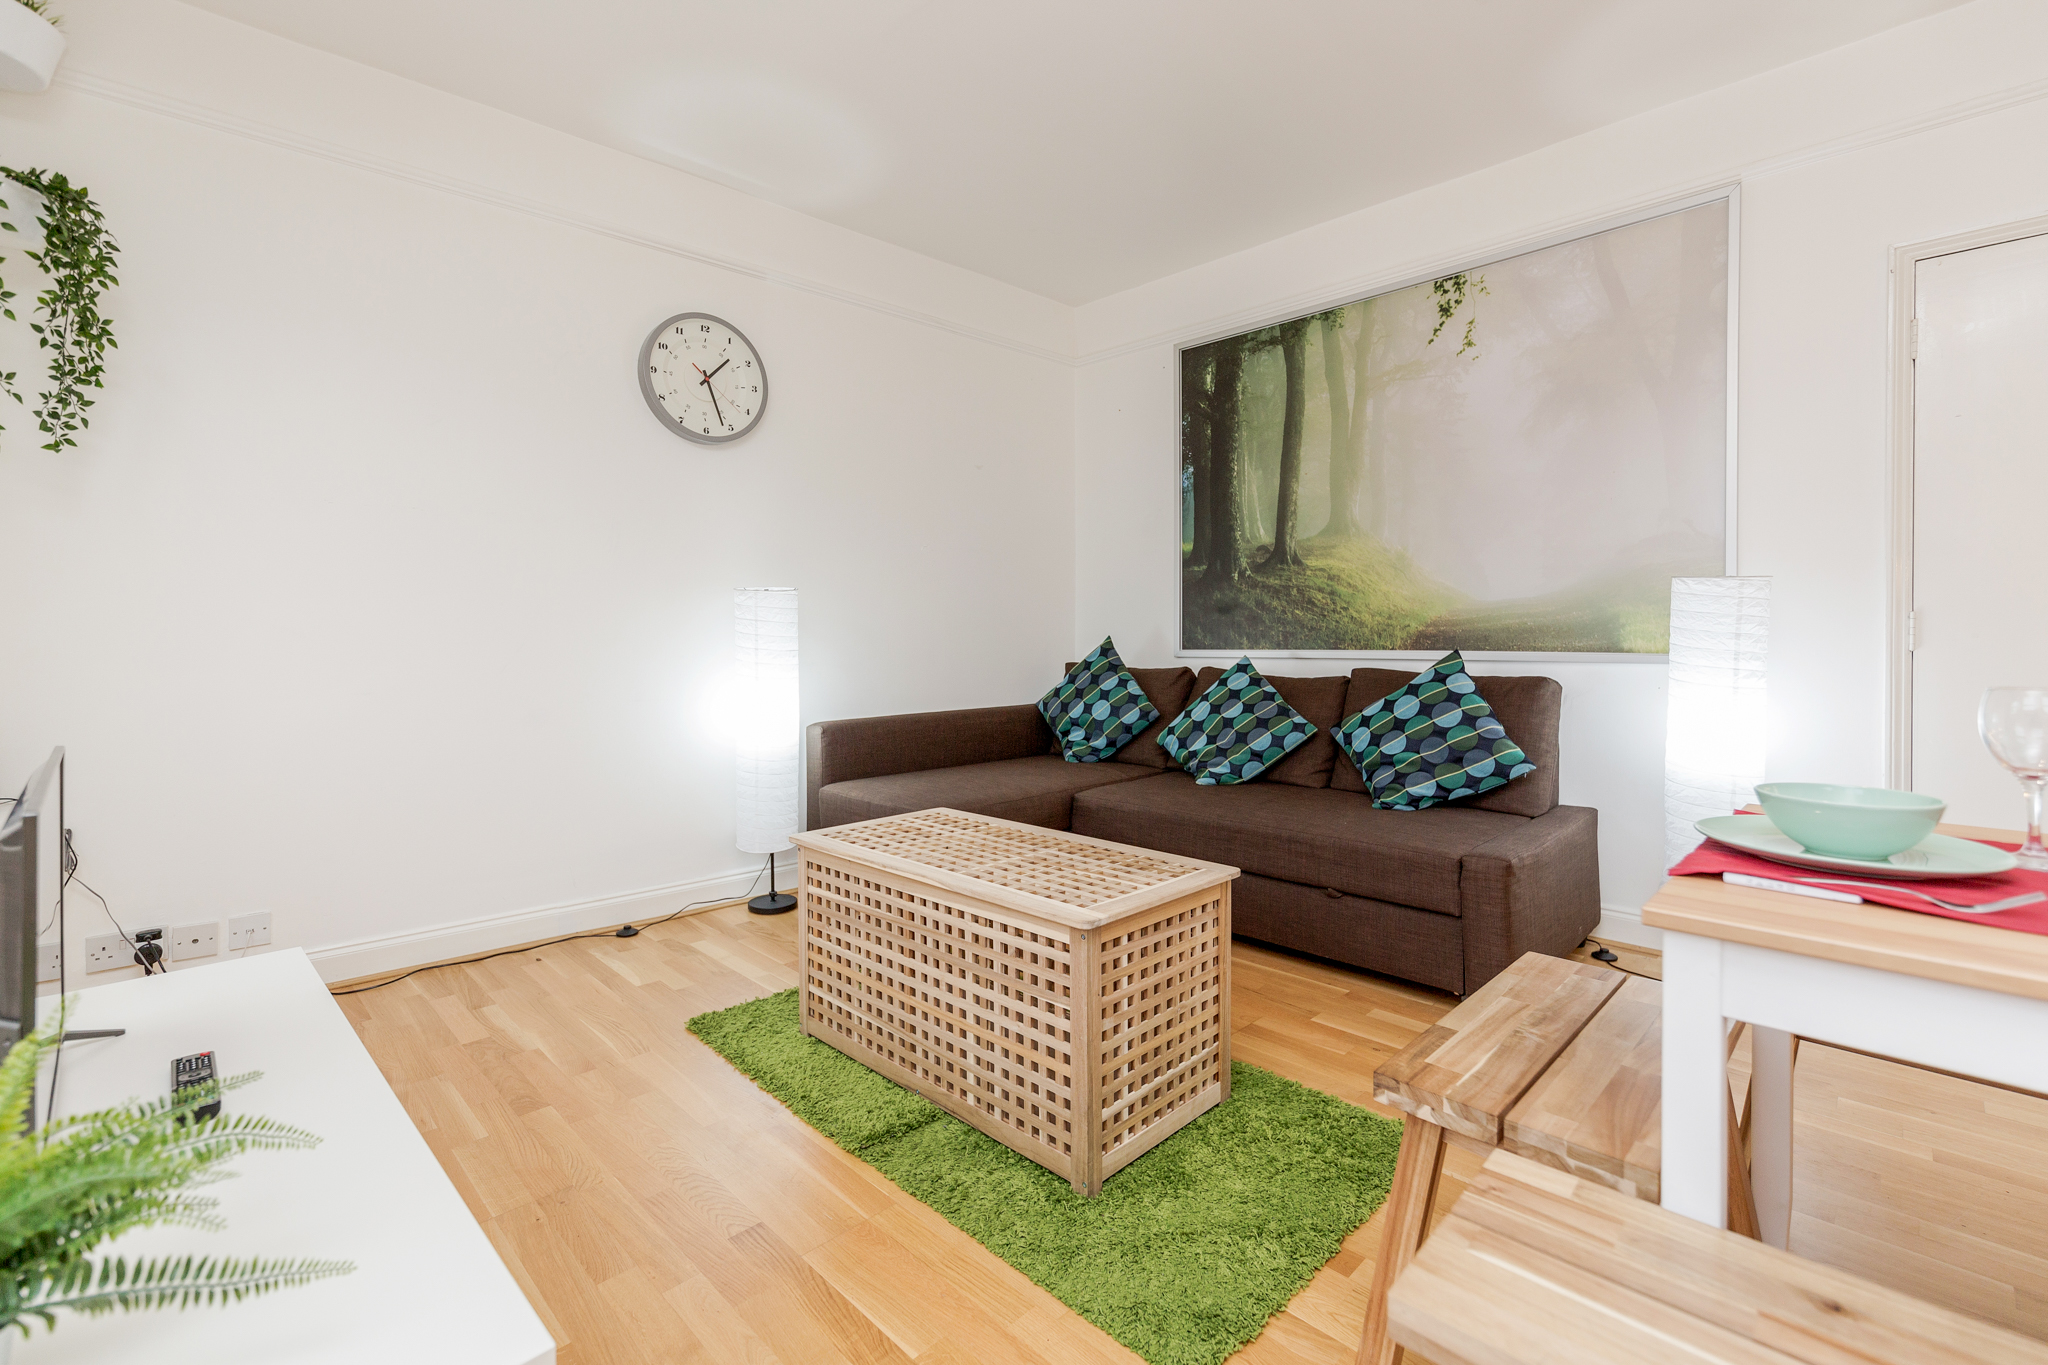 Contemporary East London Style Apartment in the heart of Brick Lane - one Minute from The Truman Brewery  photo 20324096